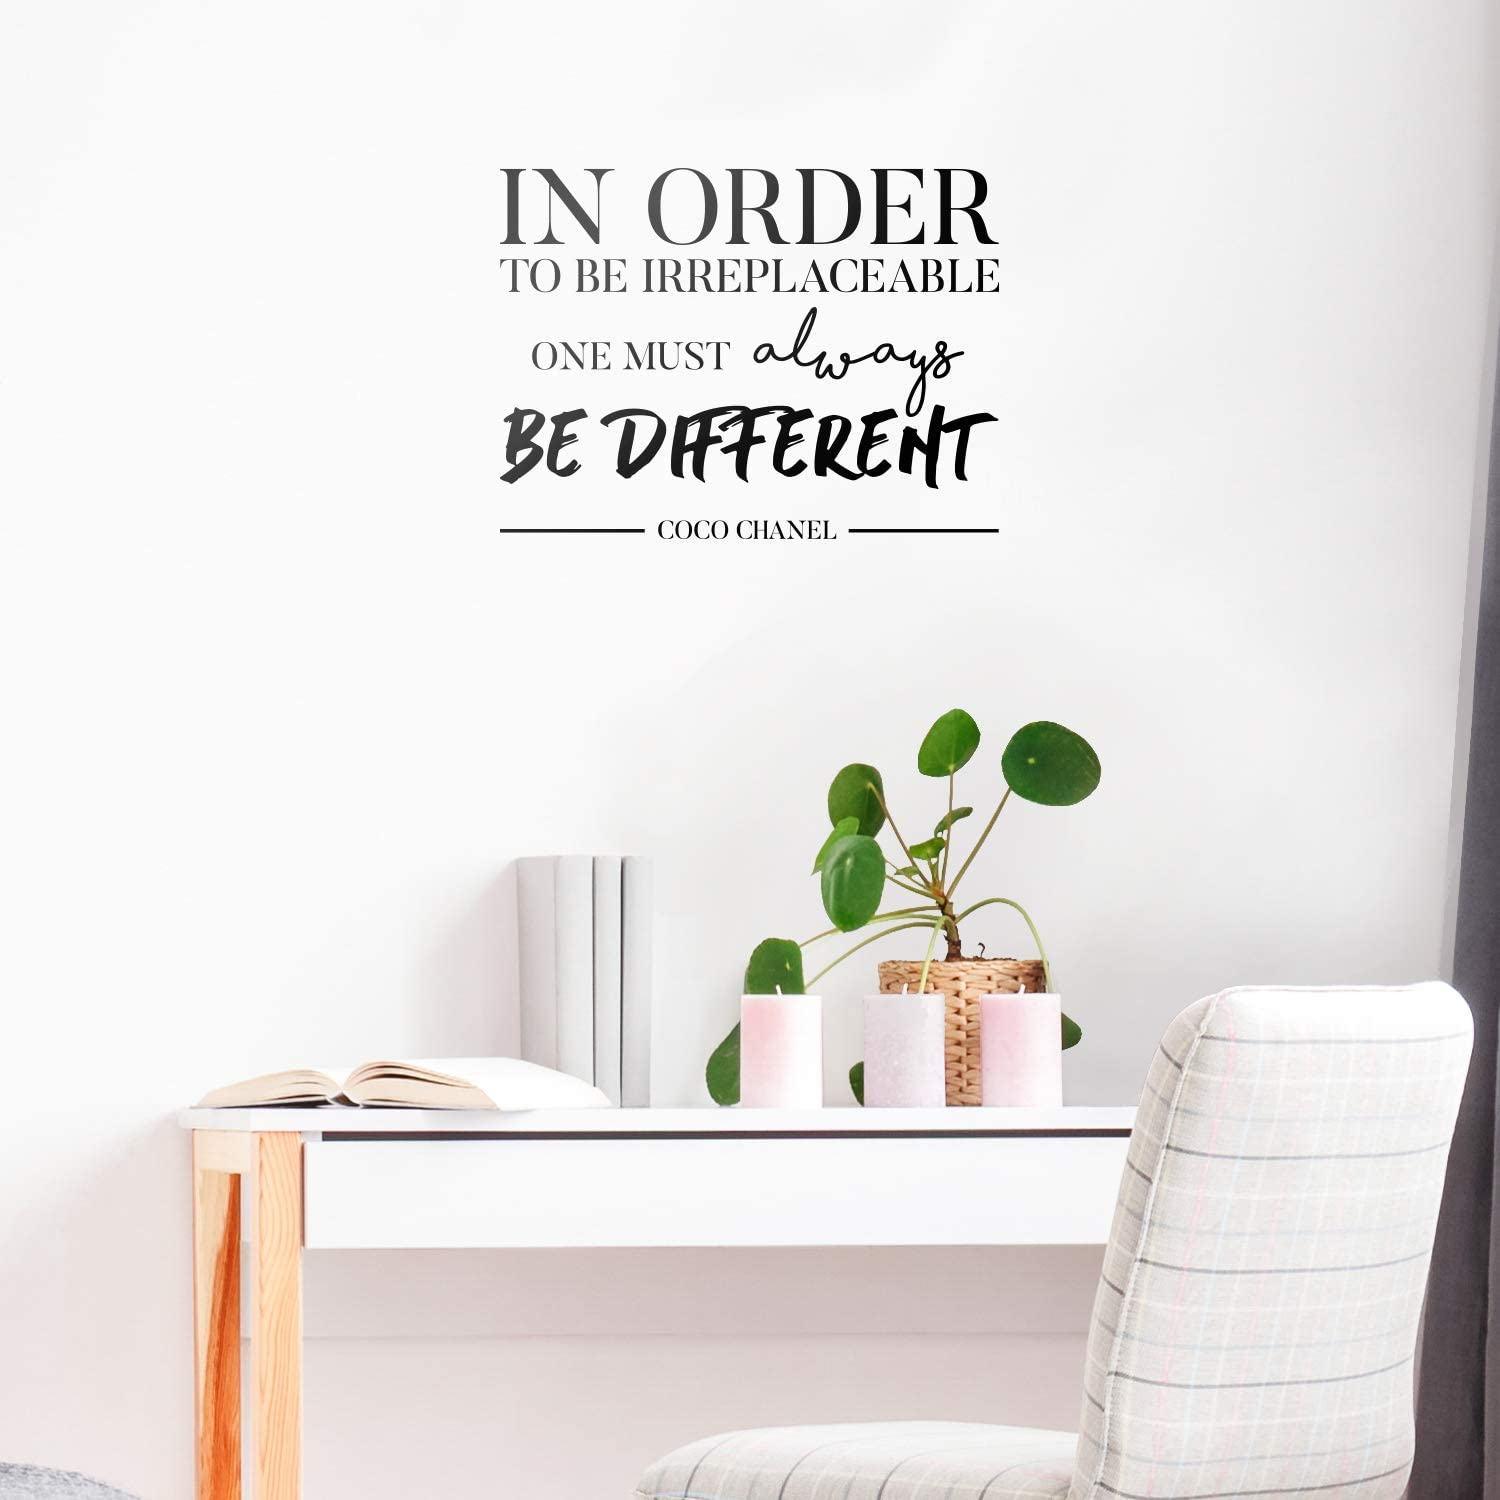 "Vinyl Wall Art Decal - in Order to Be Irreplaceable One Must Be Different - 16"" x 22"" - Coco Chanel Inspirational Quote for Home Bedroom Living Room Office Work Apartment Decor (16"" x 22"", Black)"